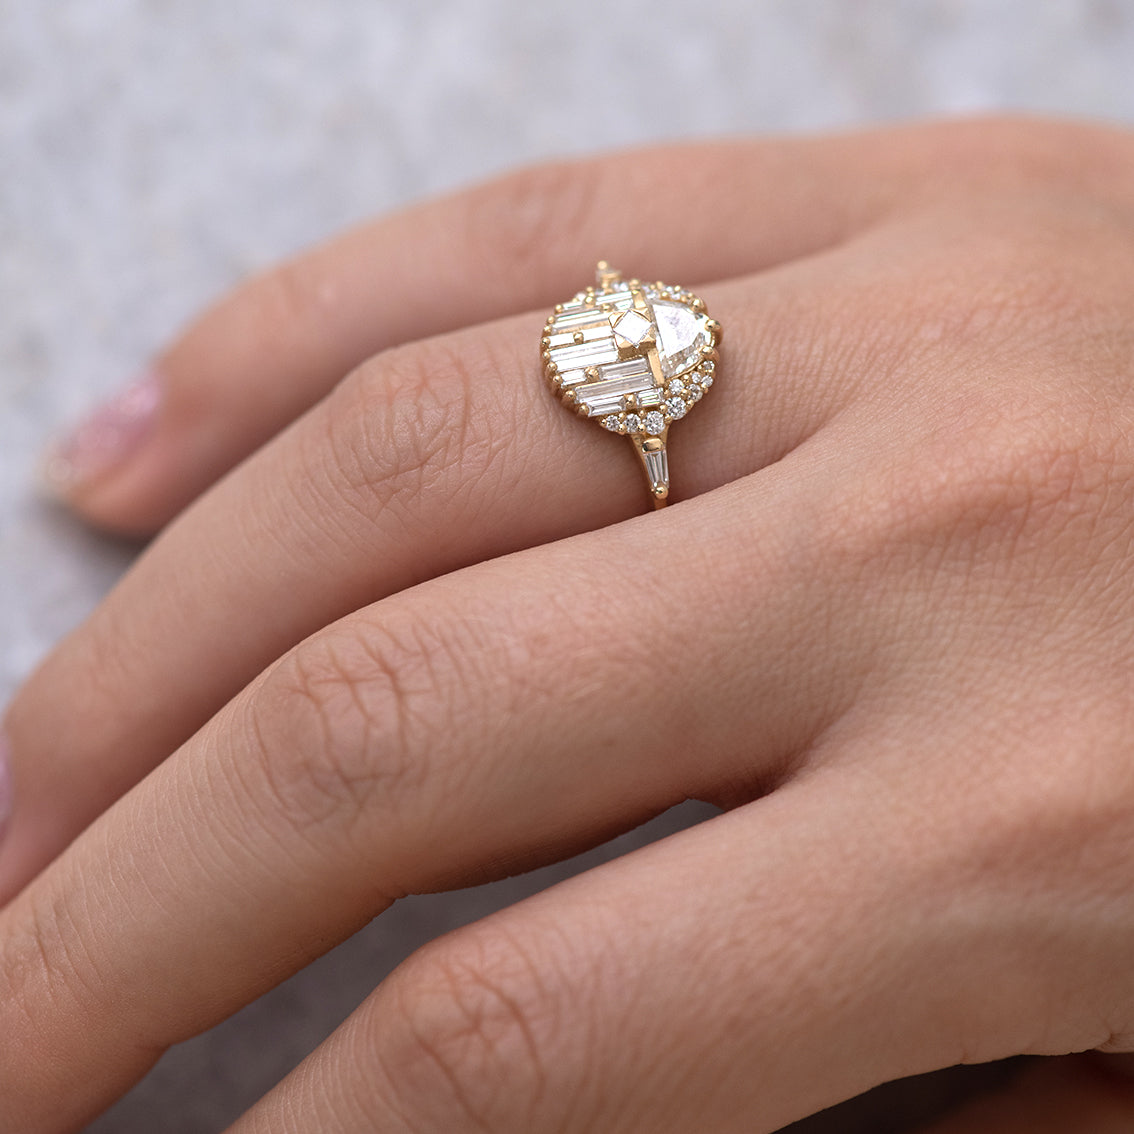 Engagement Ring with Half Moon Diamond - The Aztec Temple Ring last finger.jpg